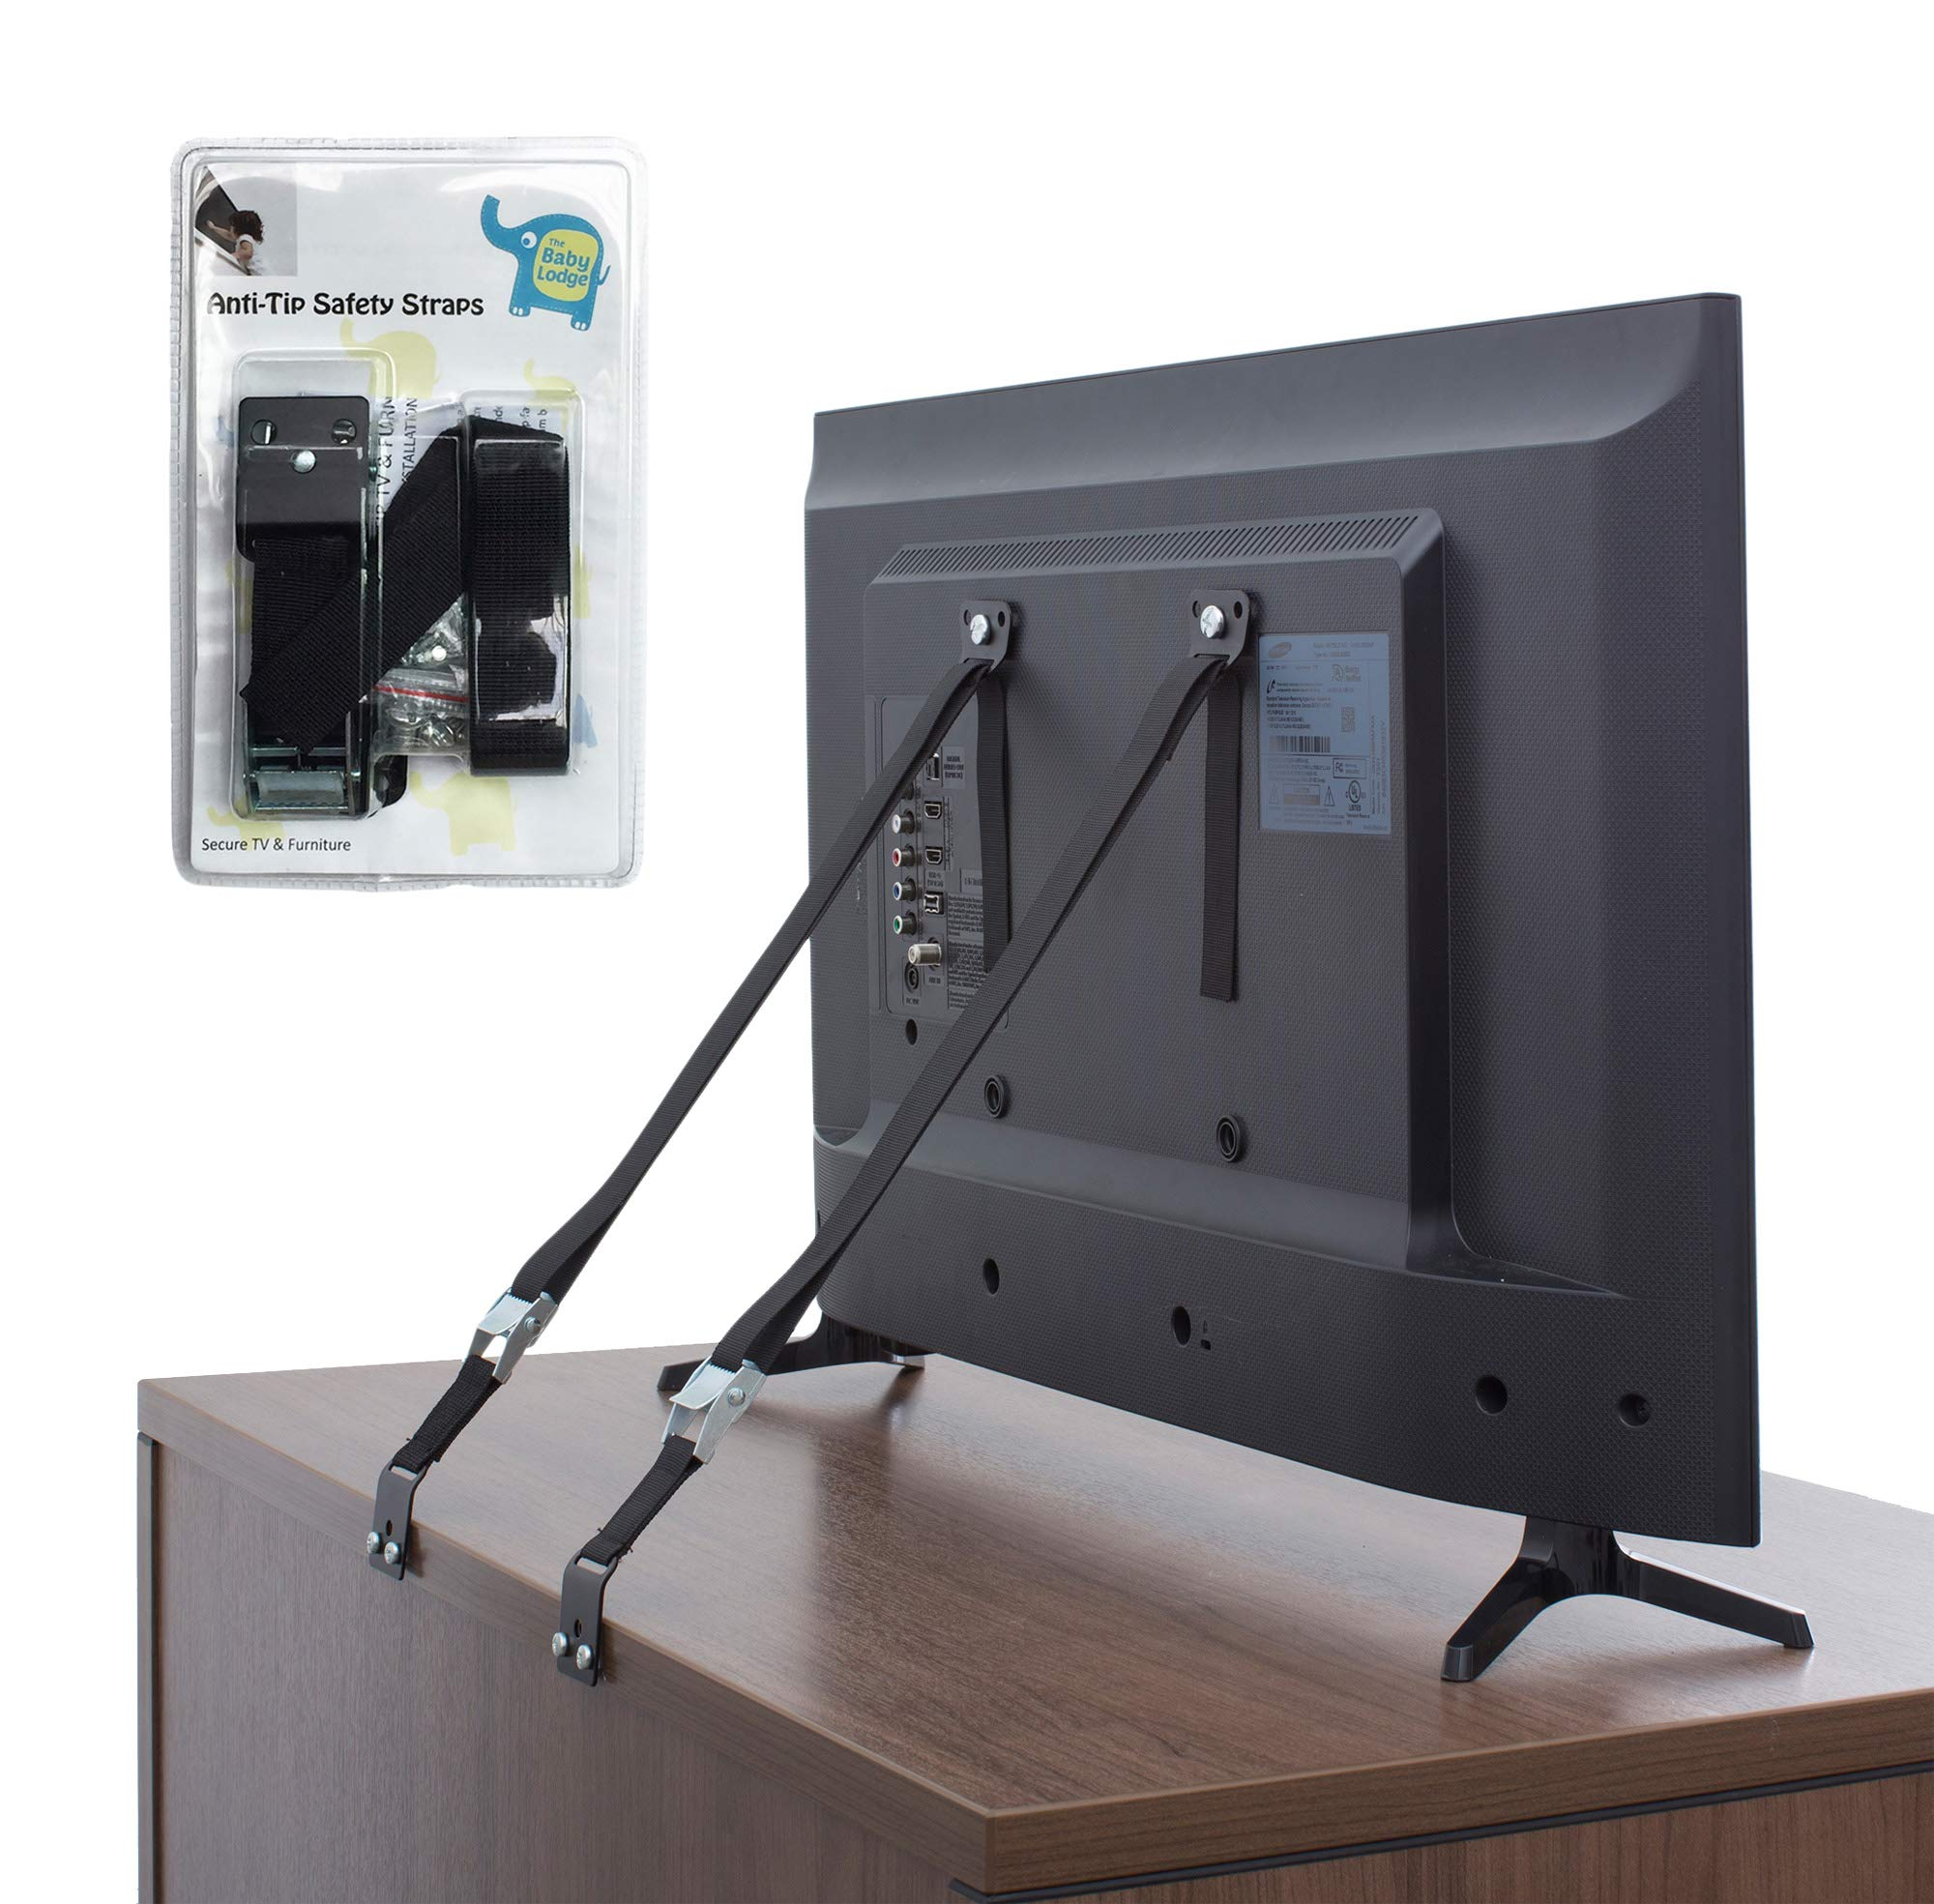 The Baby Lodge TV and Furniture Anti Tip Straps - Safety Furniture Wall Anchors for Baby Proofing Flat Screen TV, Dresser, Bookcase, Cabinets, and More - All Metal, No Plastic Parts (2 Pack, Black) by The Baby Lodge